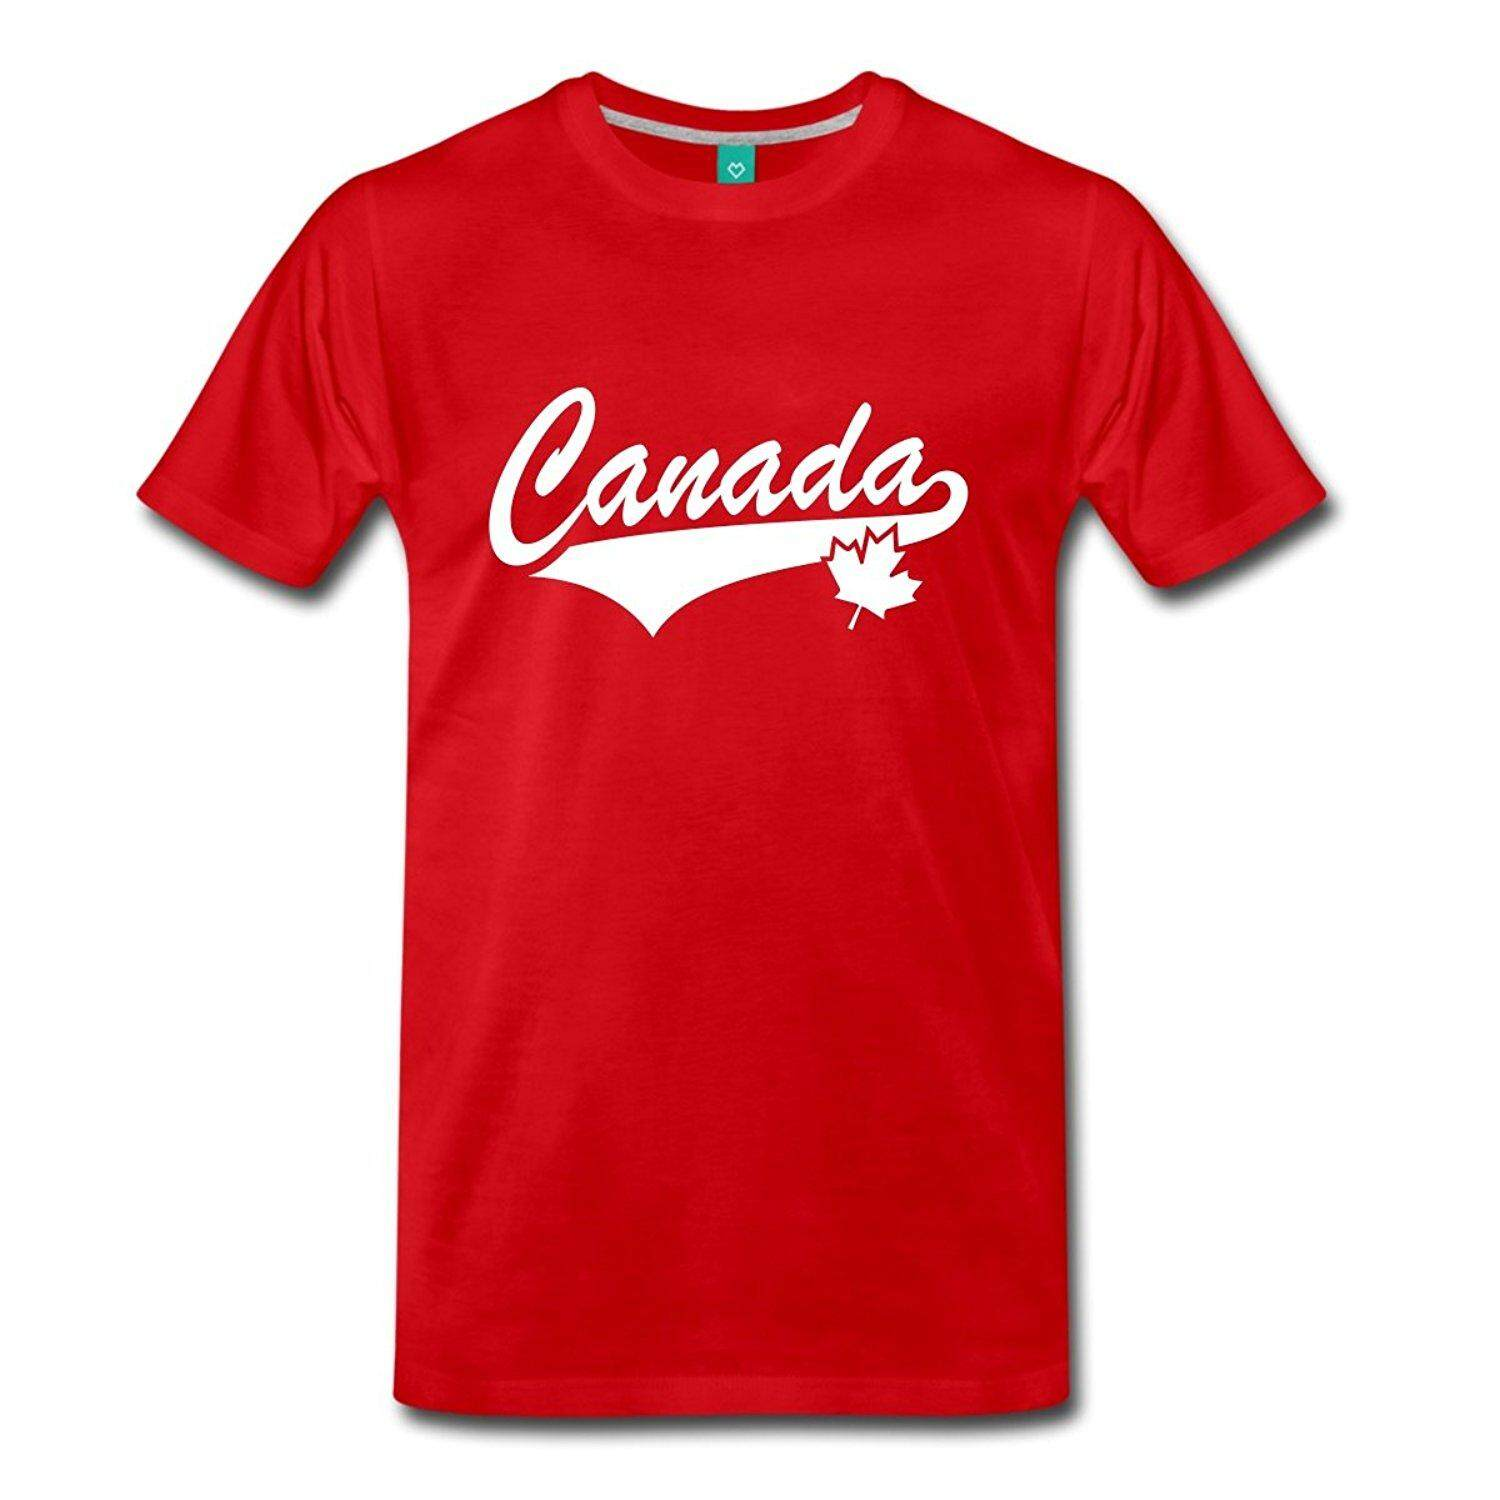 Canada Collegiate Maple Leaf Men s Premium T-Shirt Tee Shirt Homme T Shirt  Men Funny 4cfc289f5a426